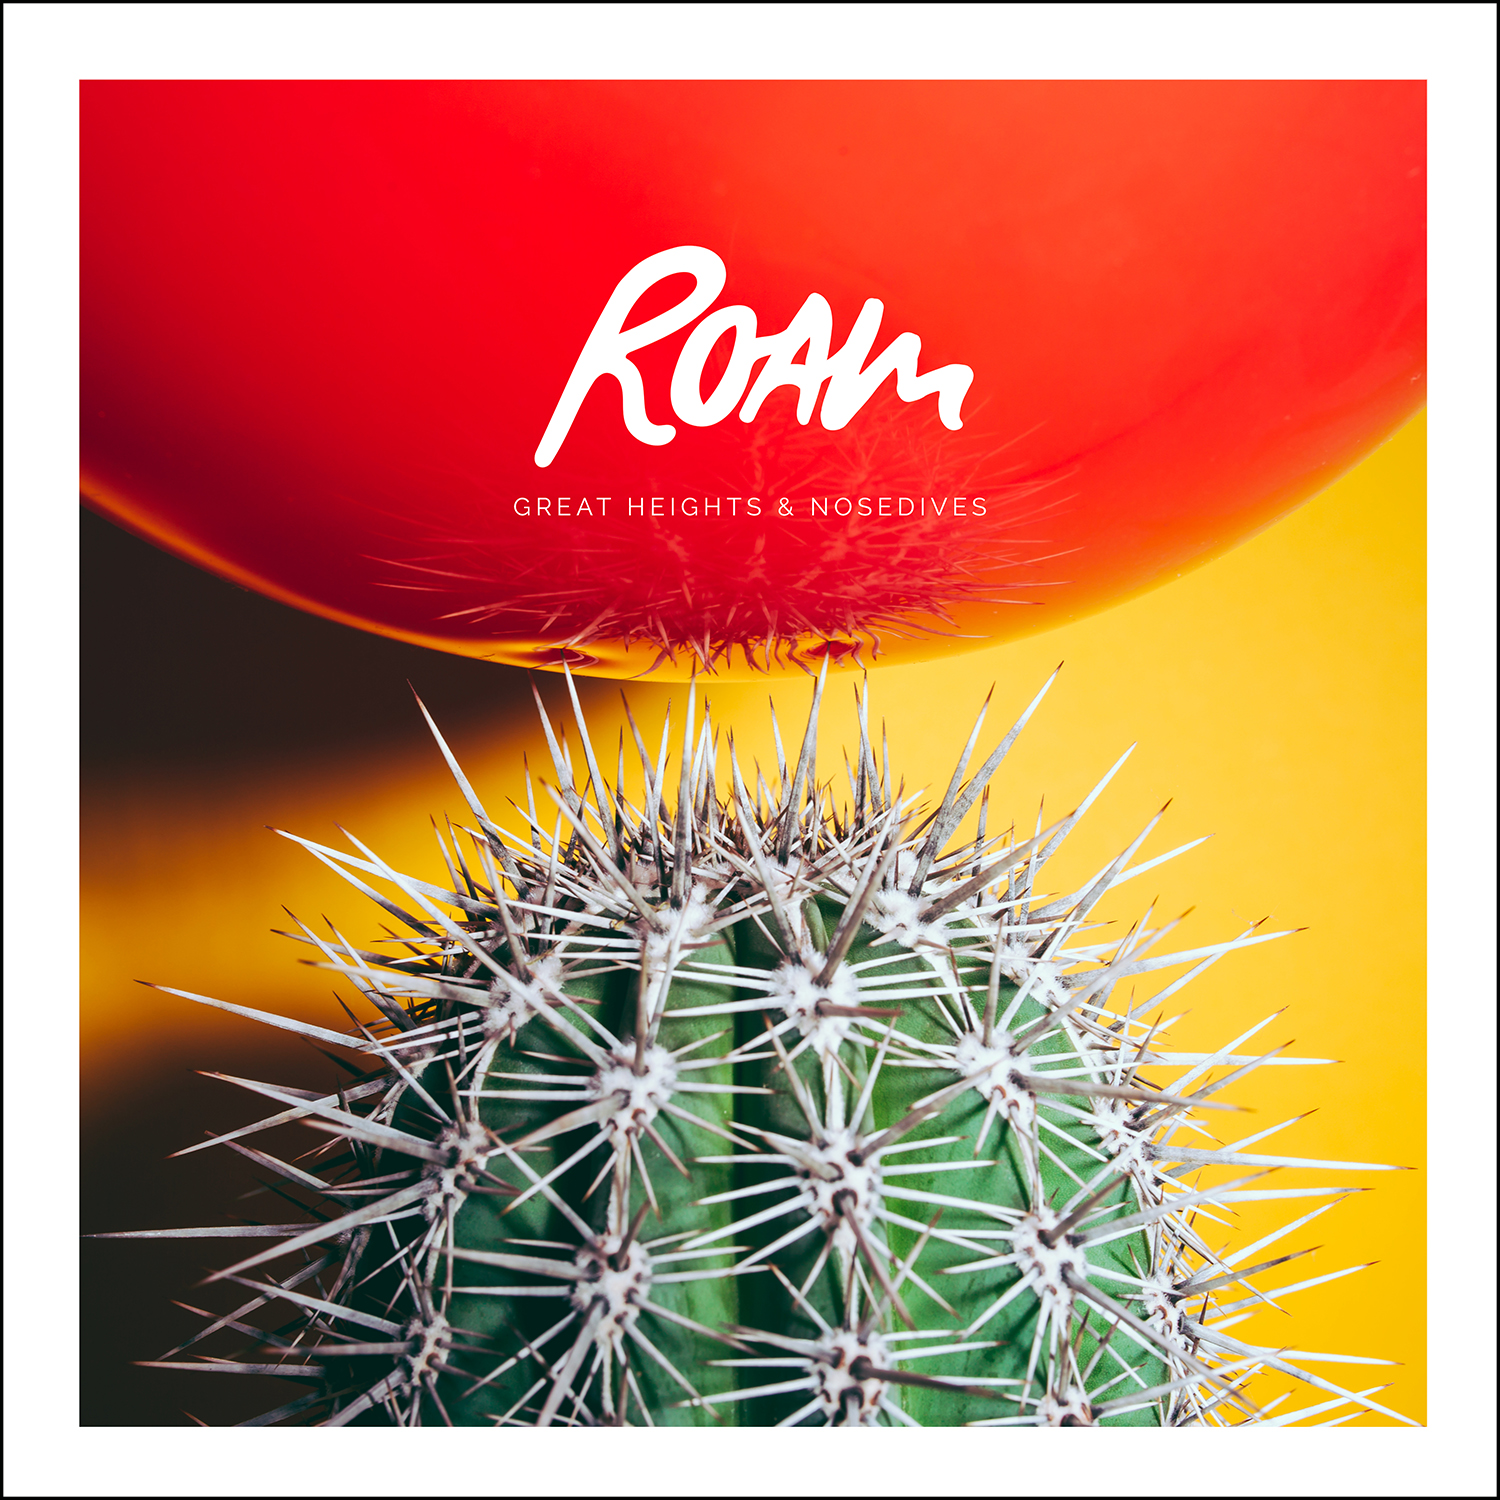 ROAM - Great Heights & Nosedives